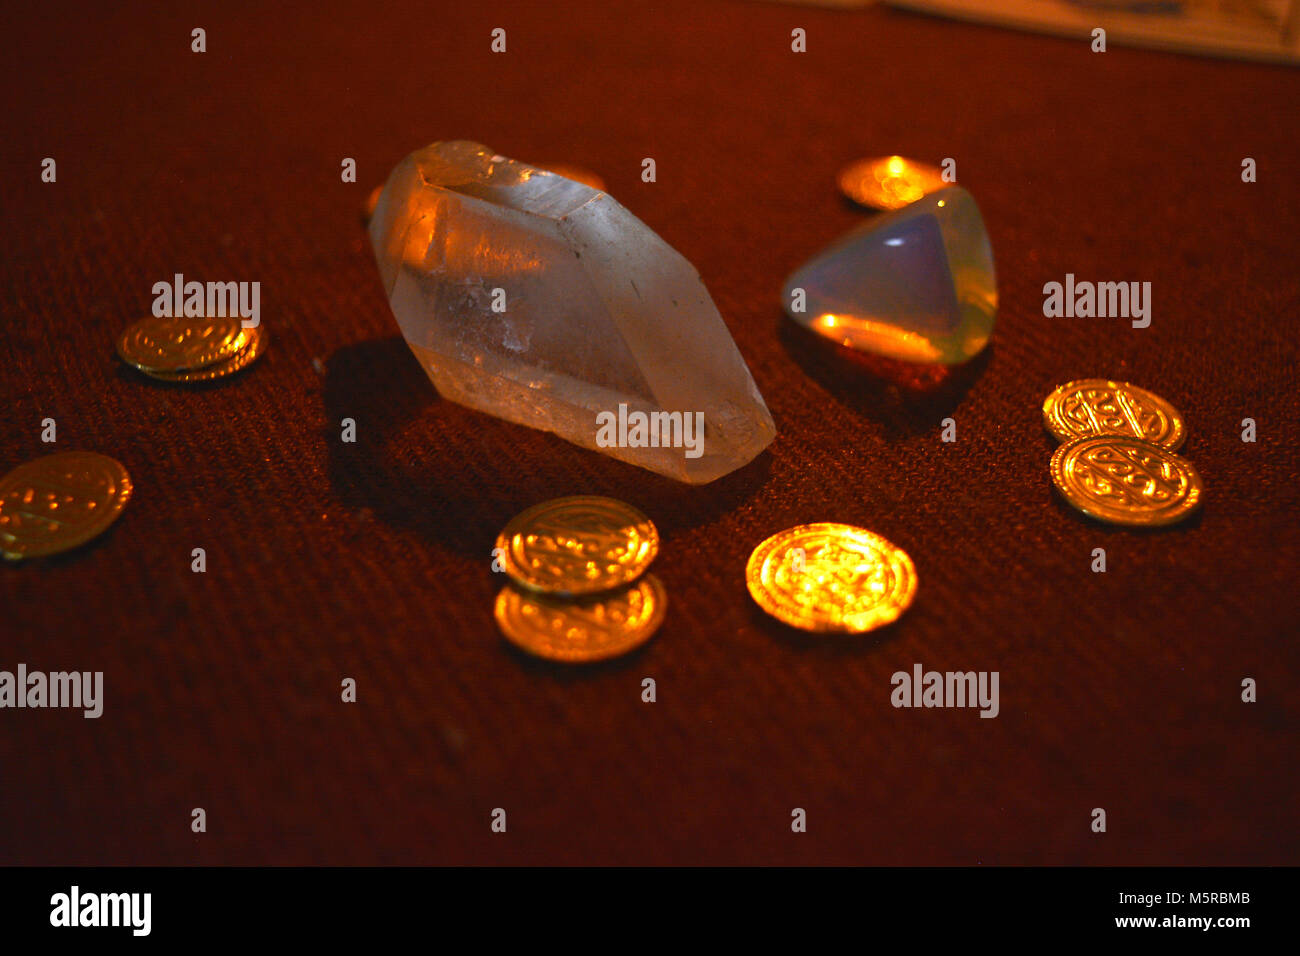 Crystals and gold on table by candle light - Stock Image